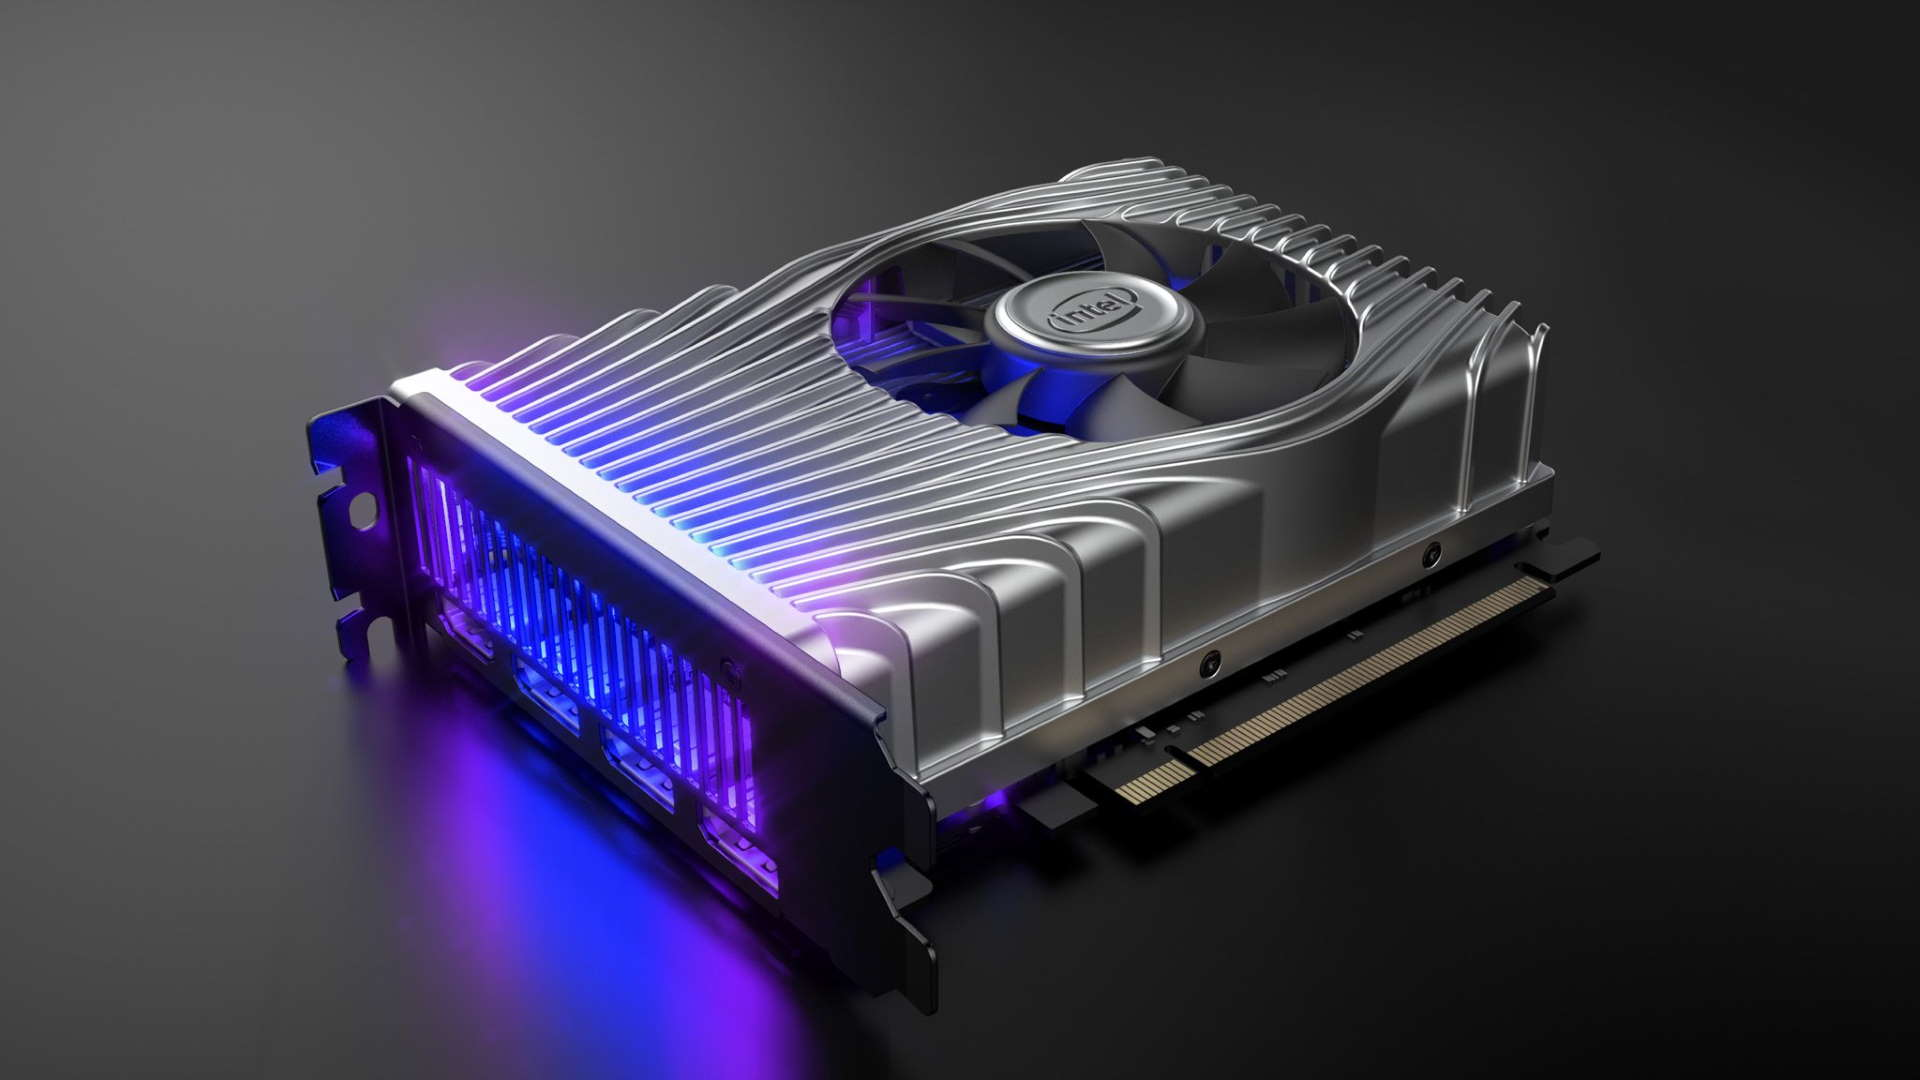 Intel Xe DG2 gaming GPUs might have double the VRAM of Nvidia's RTX 3070